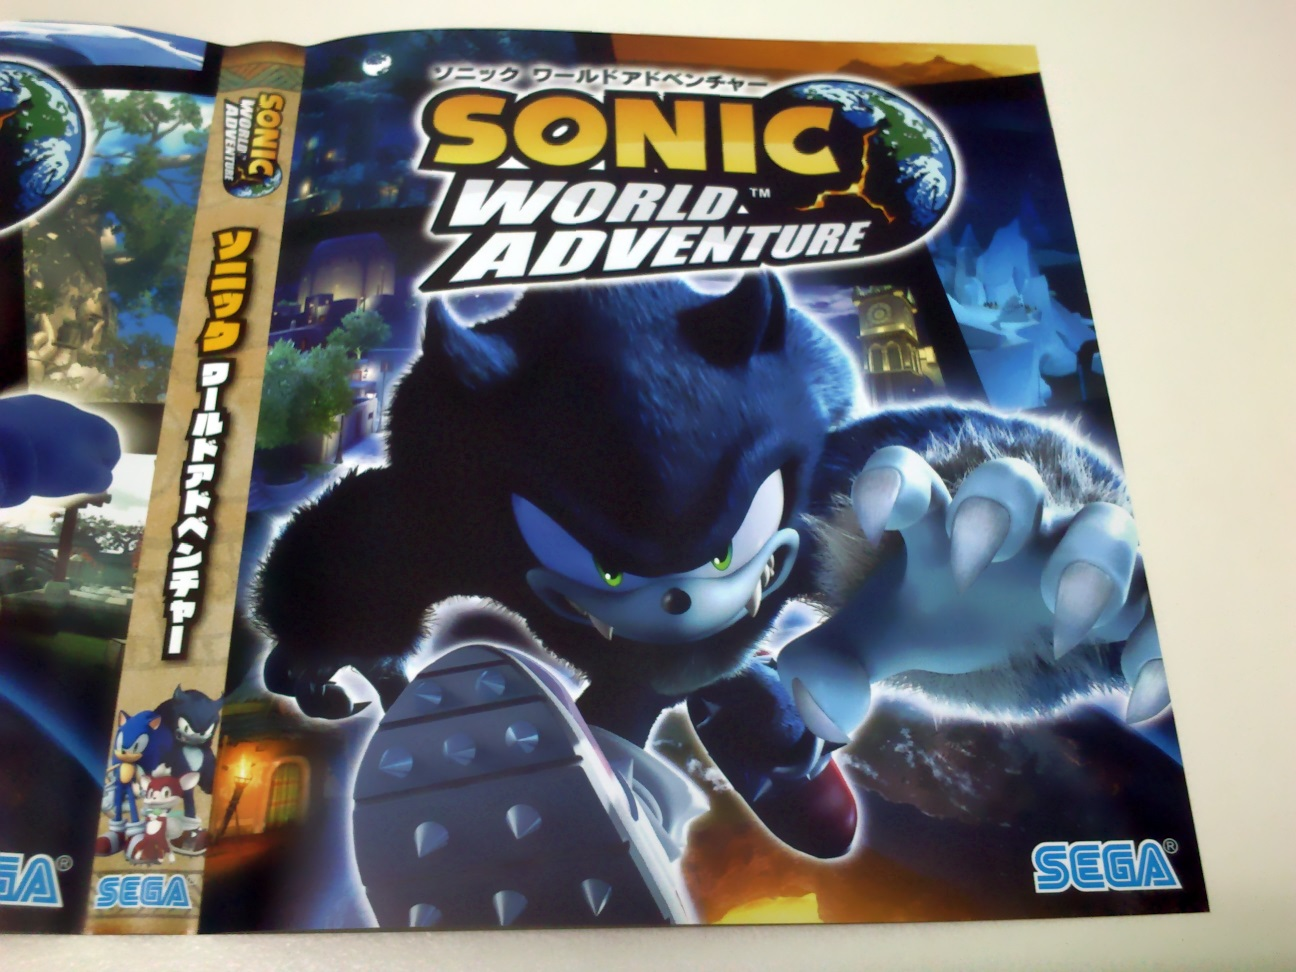 Sonic Unleashed Ps3 Japan Version - Collectibles -6663